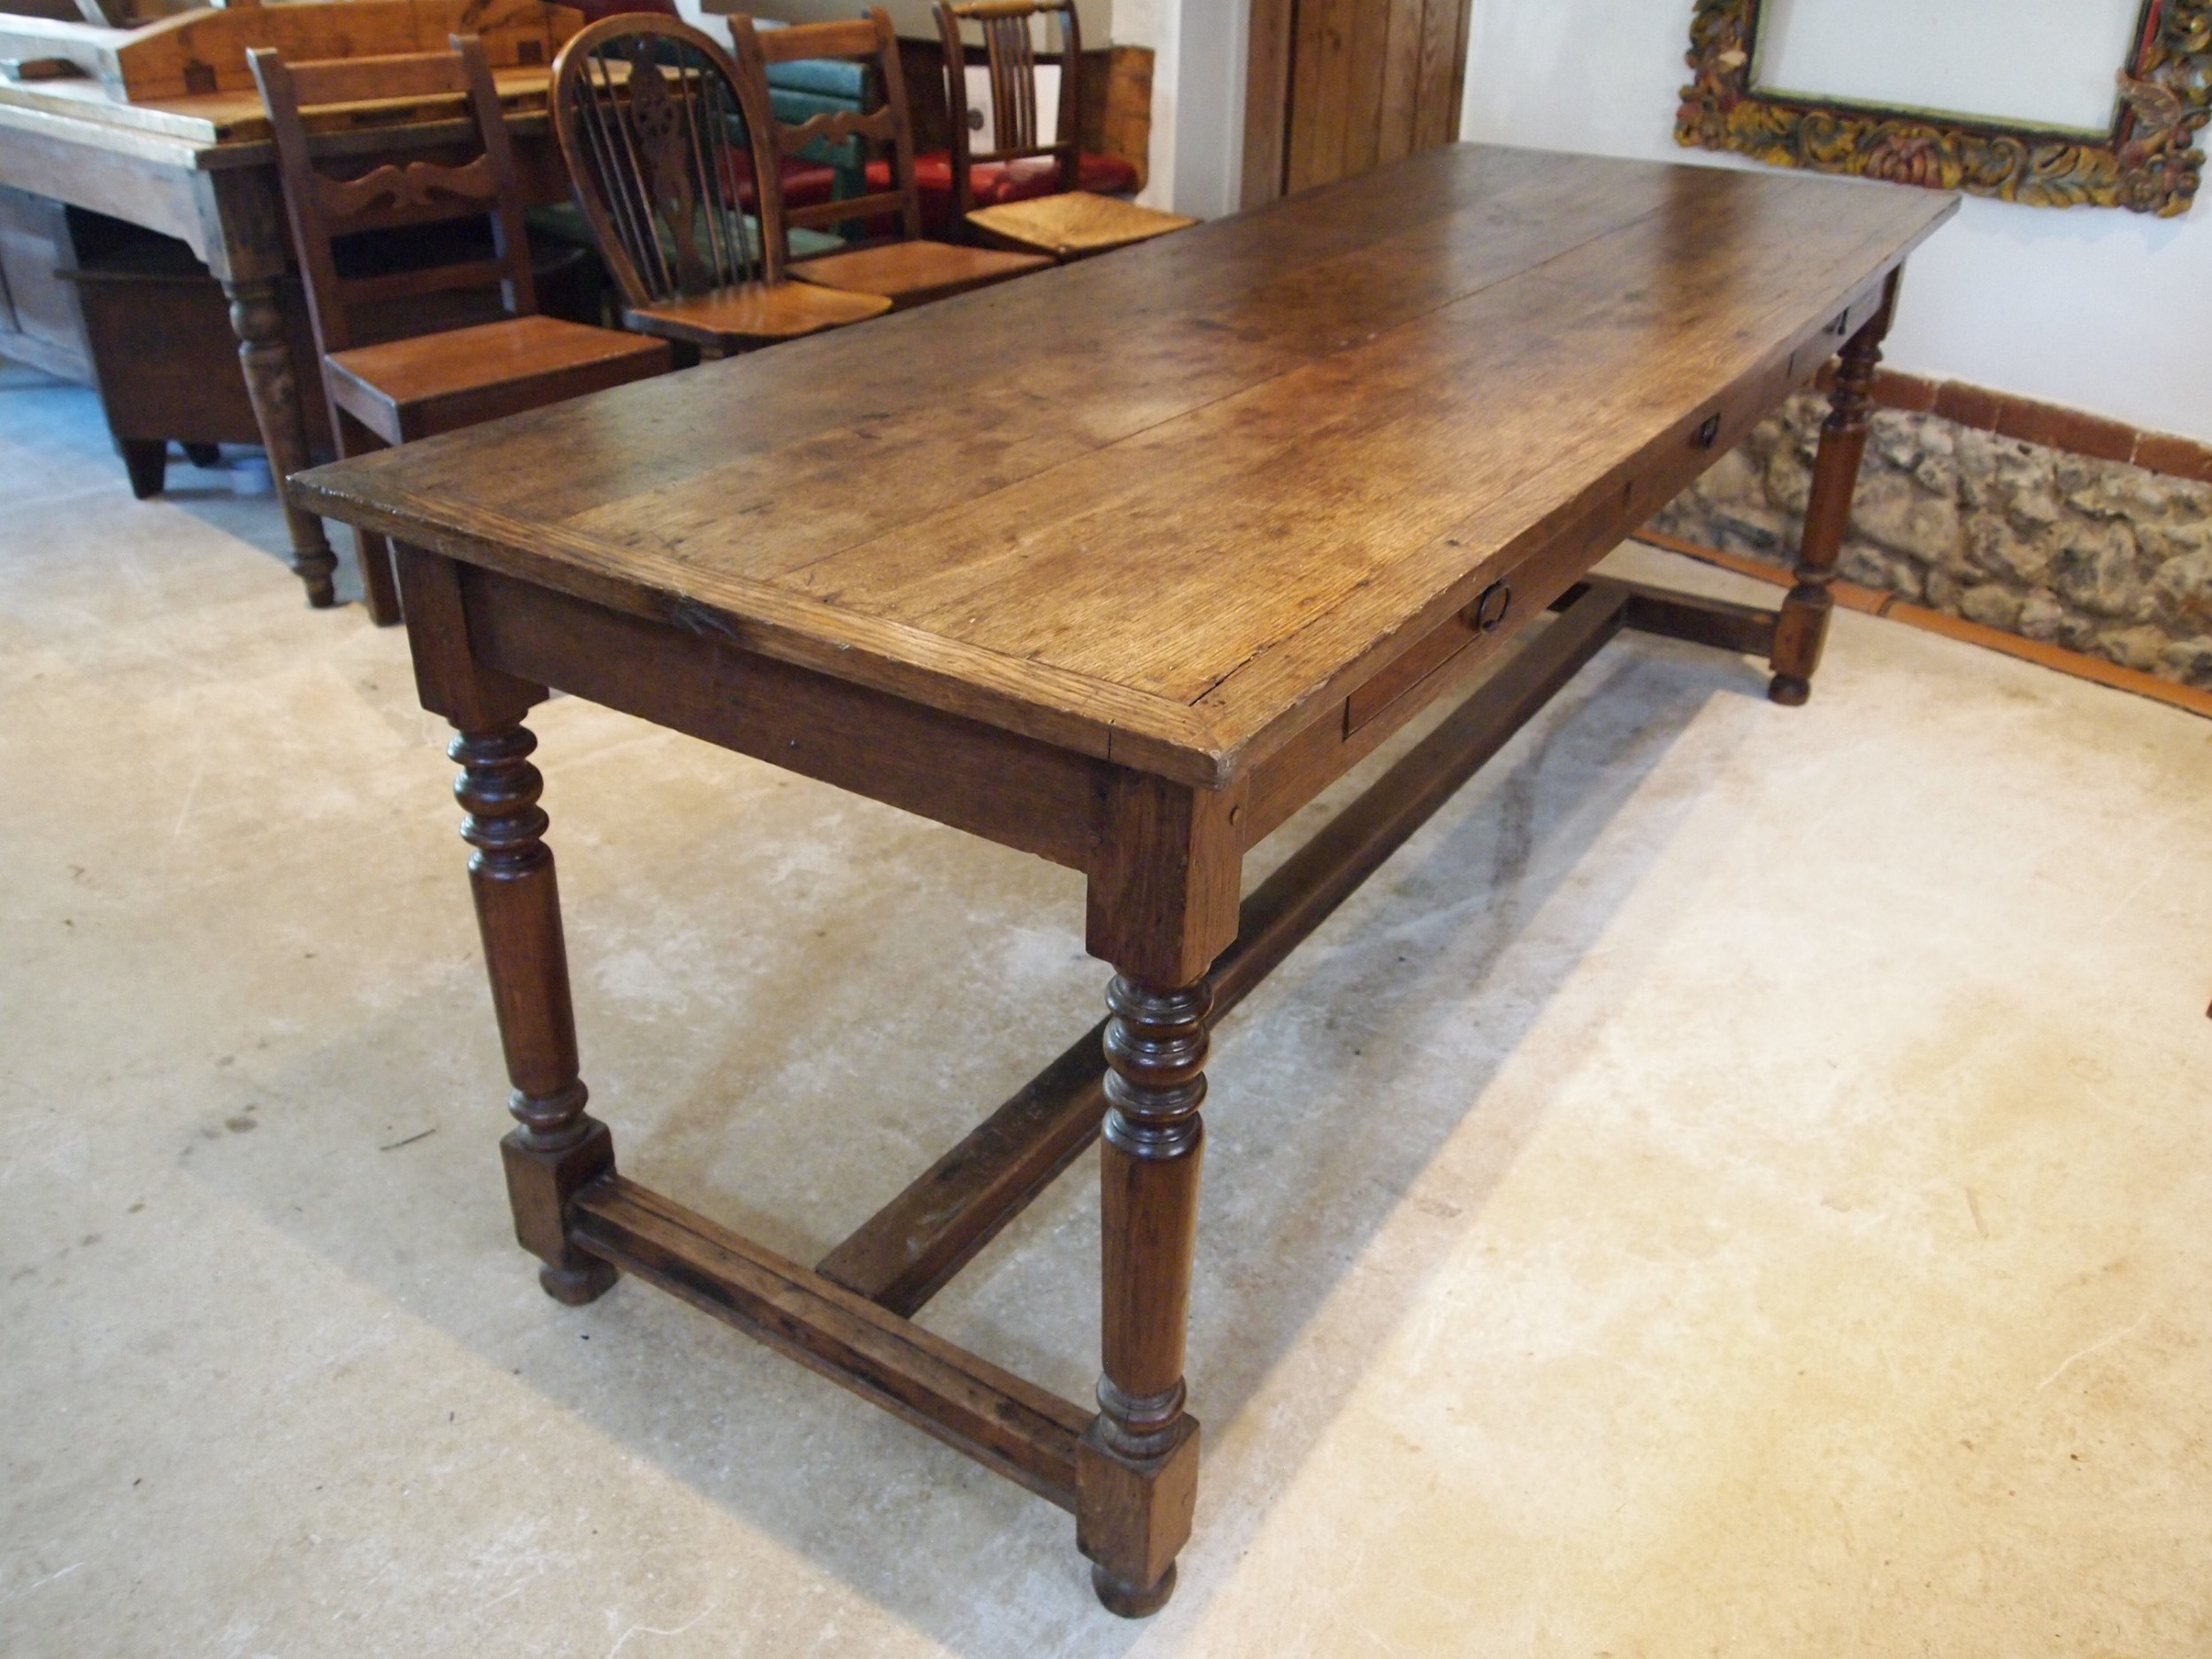 table refectory farmhouse dining french oak c1880